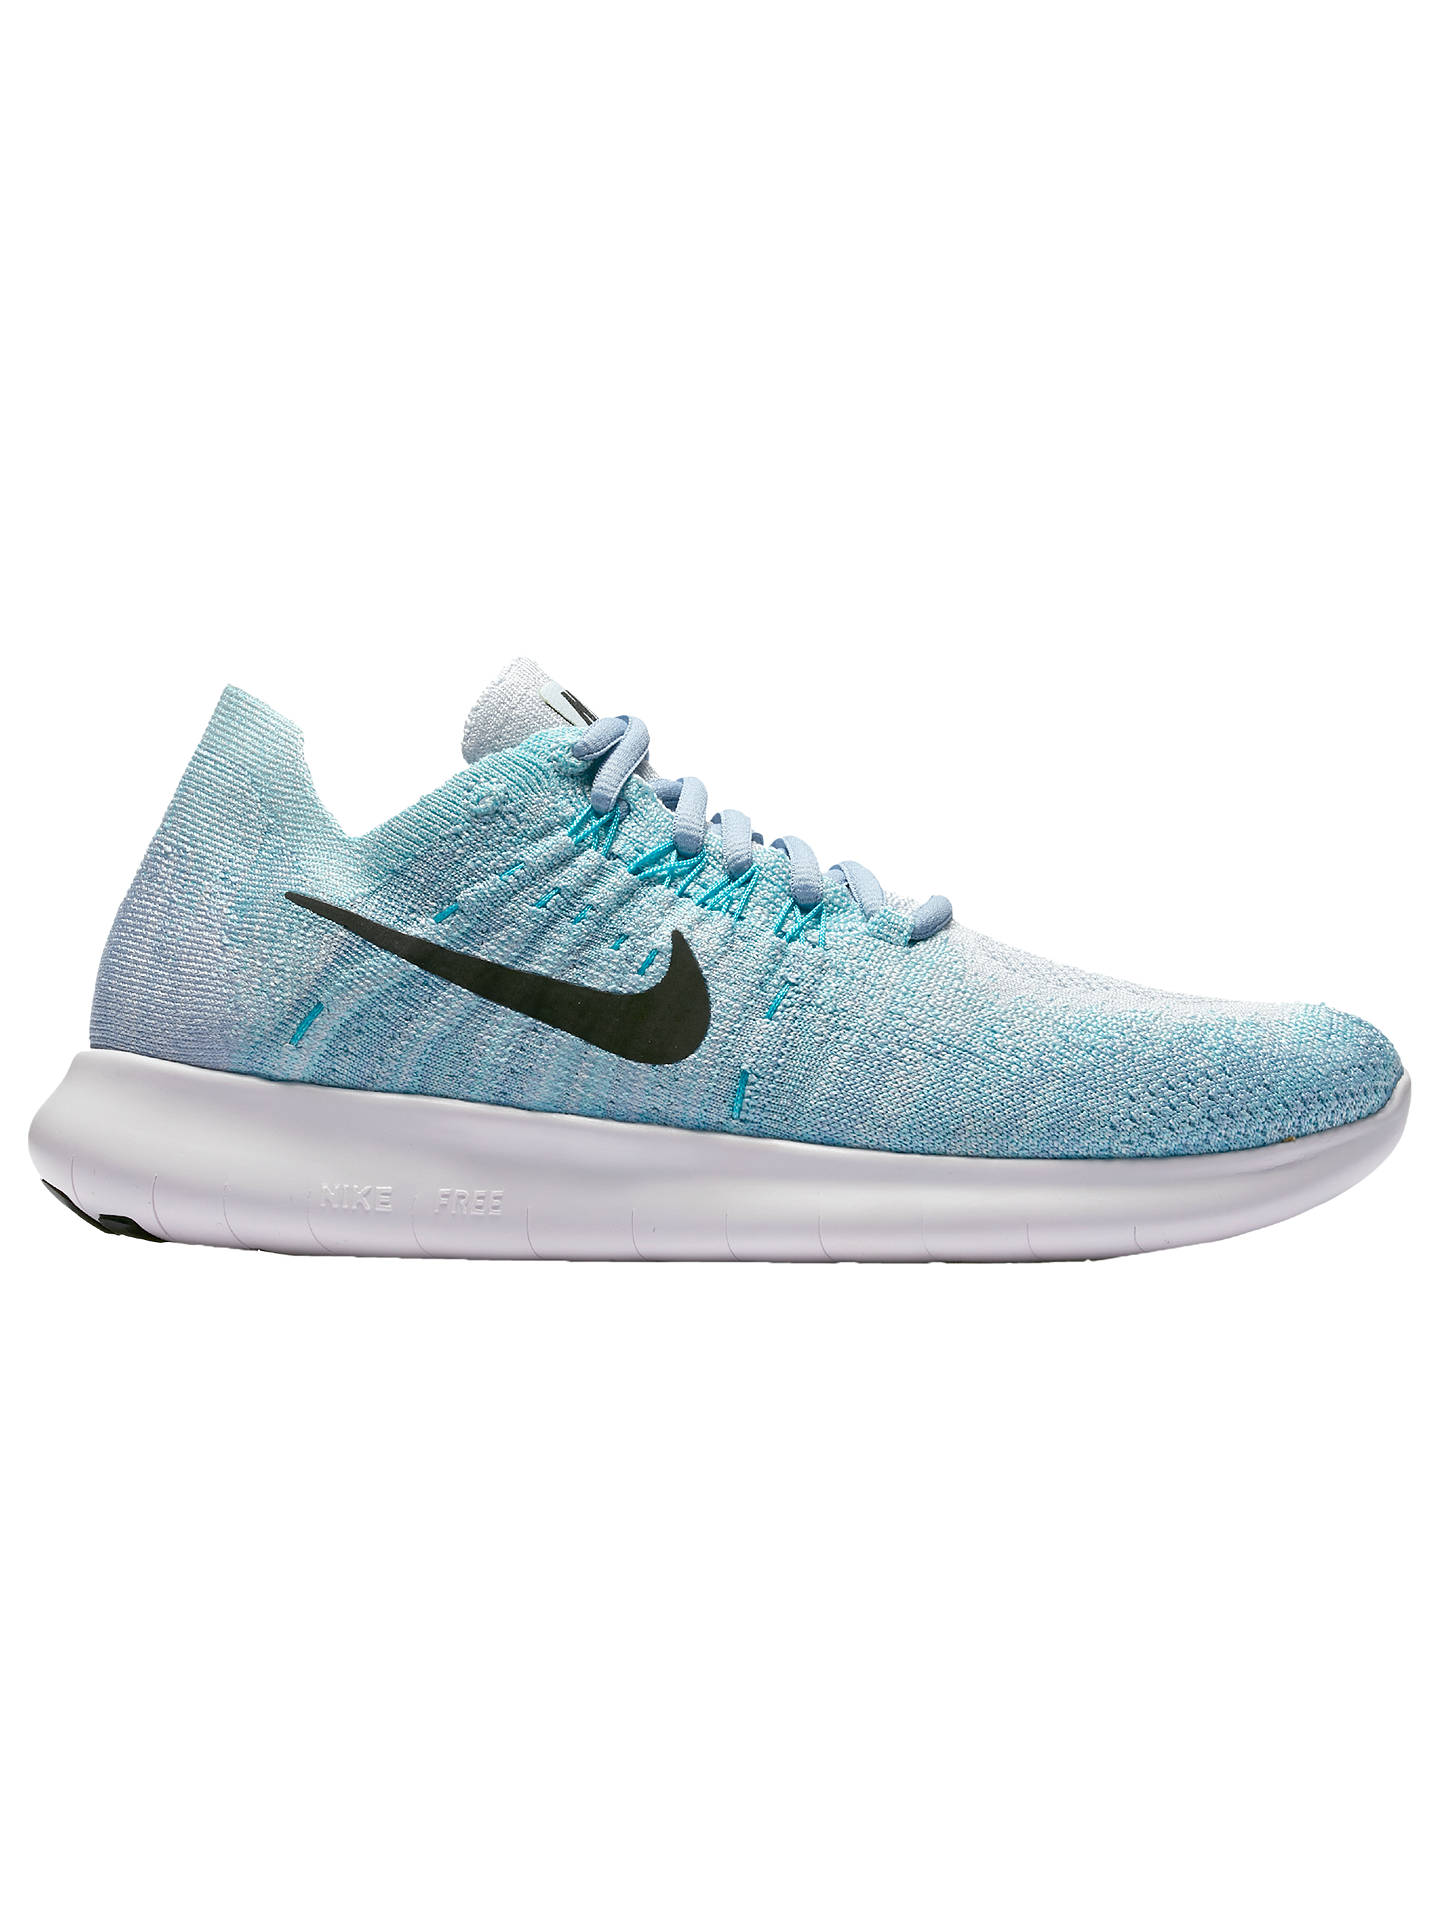 finest selection f8660 b9063 Nike Free RN Flyknit 2017 Women's Running Shoes at John ...